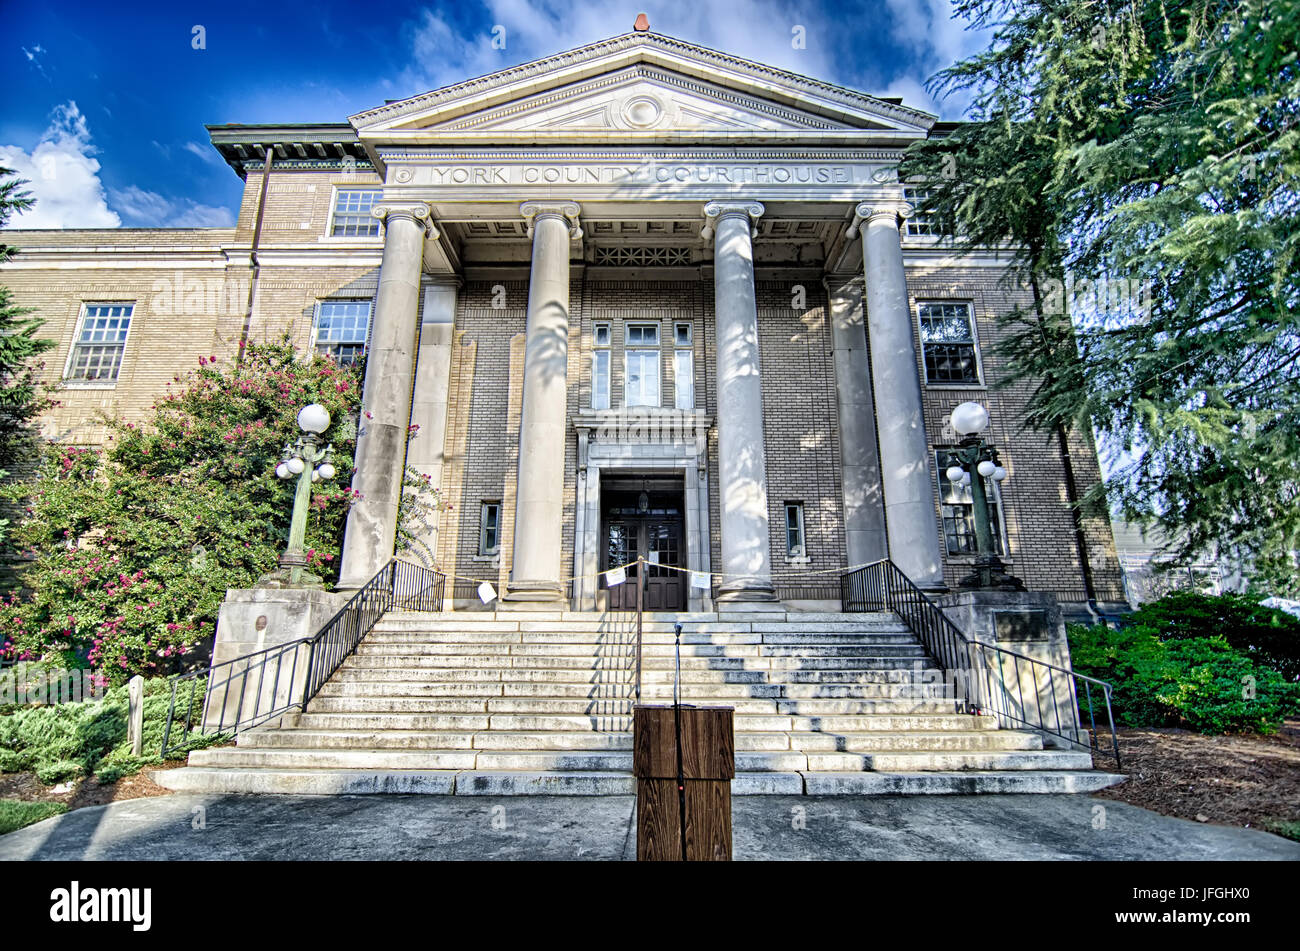 August 2015 old city of york south carolina couthouse - Stock Image